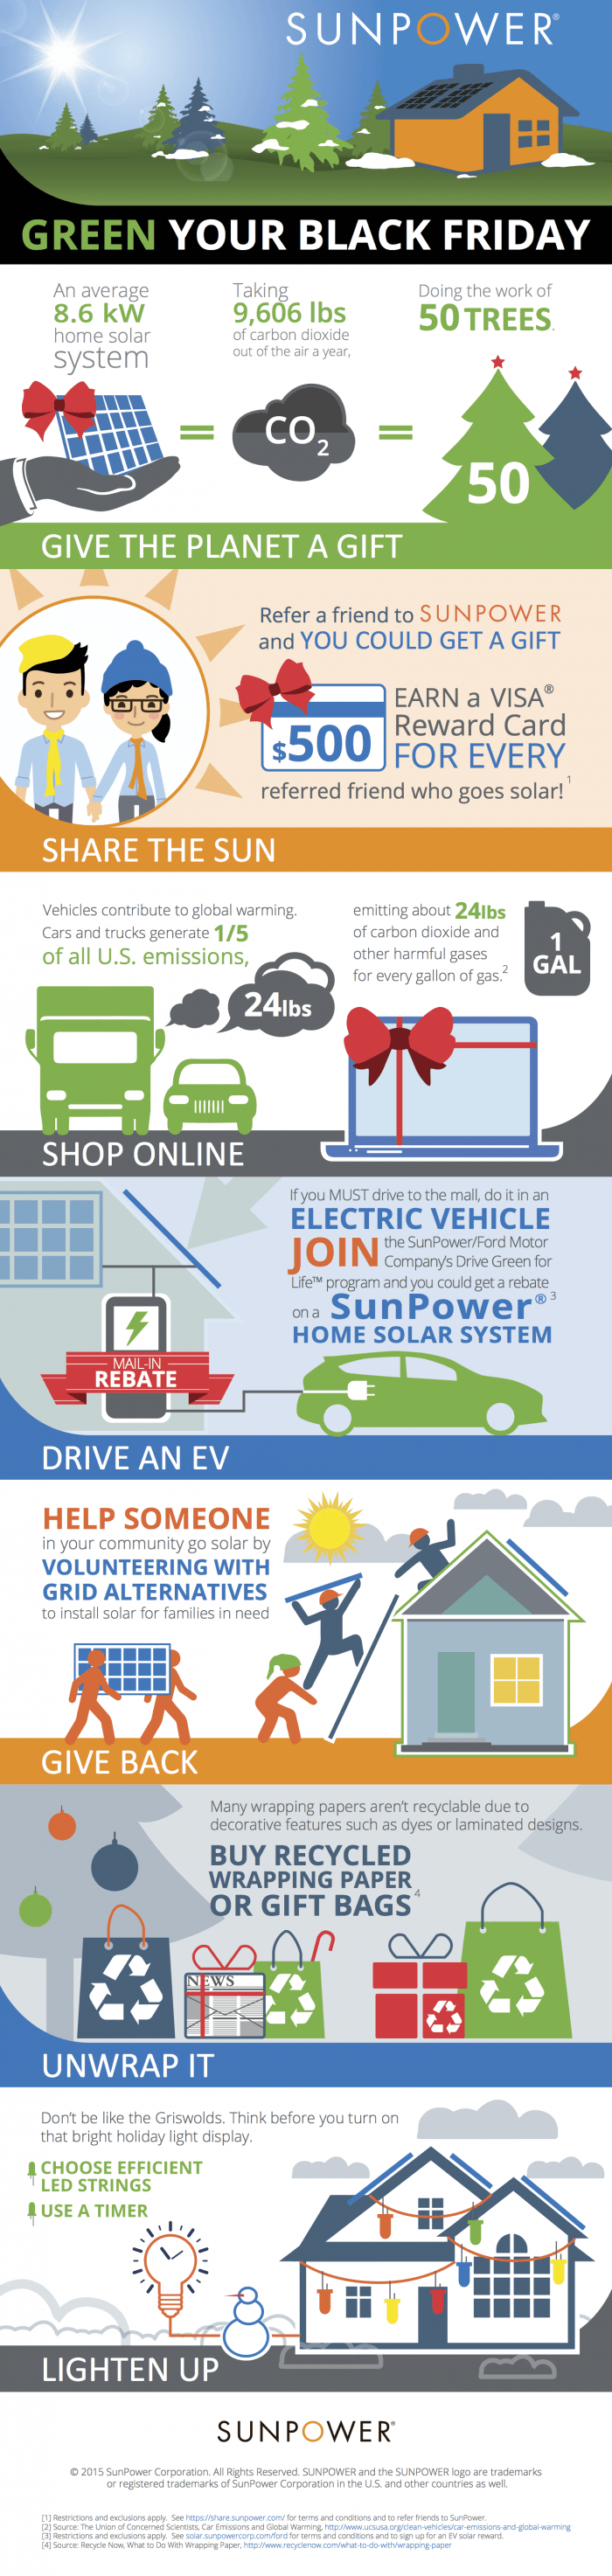 Green Your Black Friday Infographic